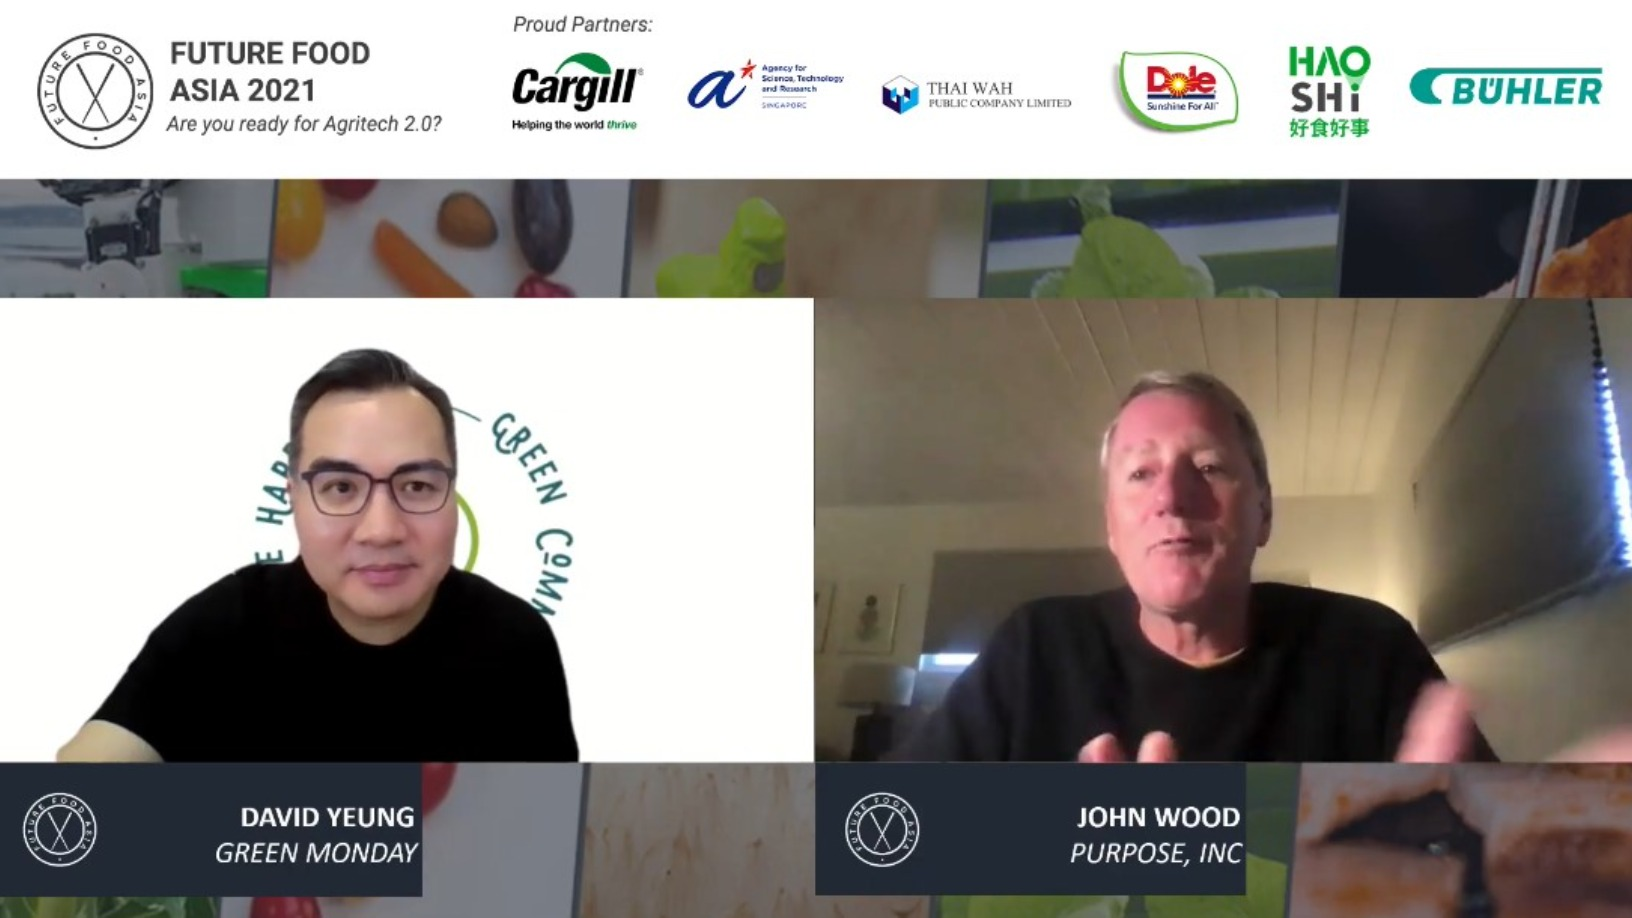 Future Food Asia 2021: Fireside chat with Green Monday's David Yeung